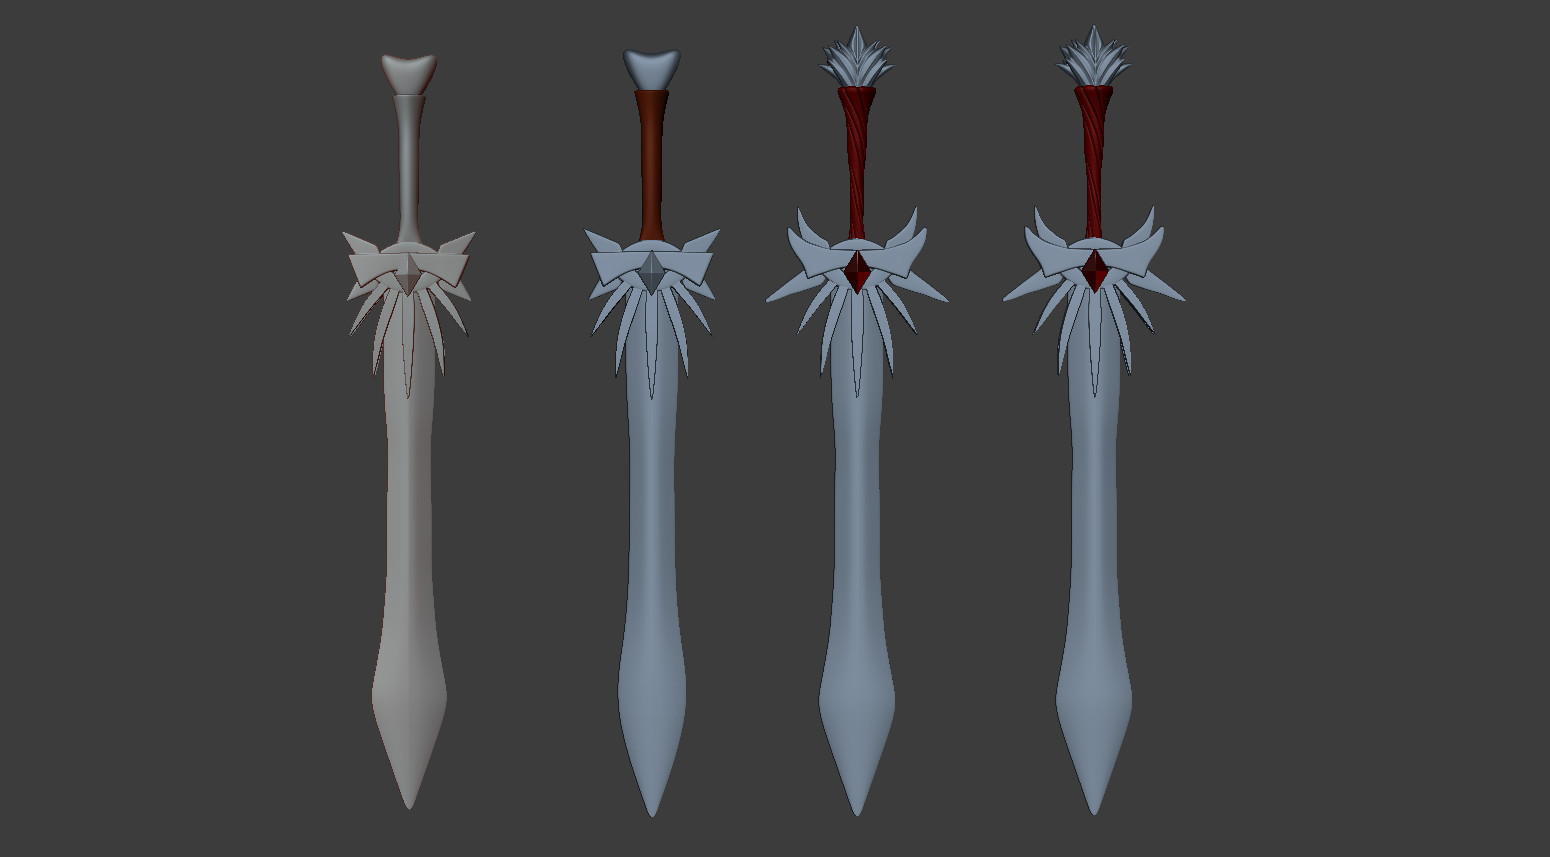 Sword Blocking without details.